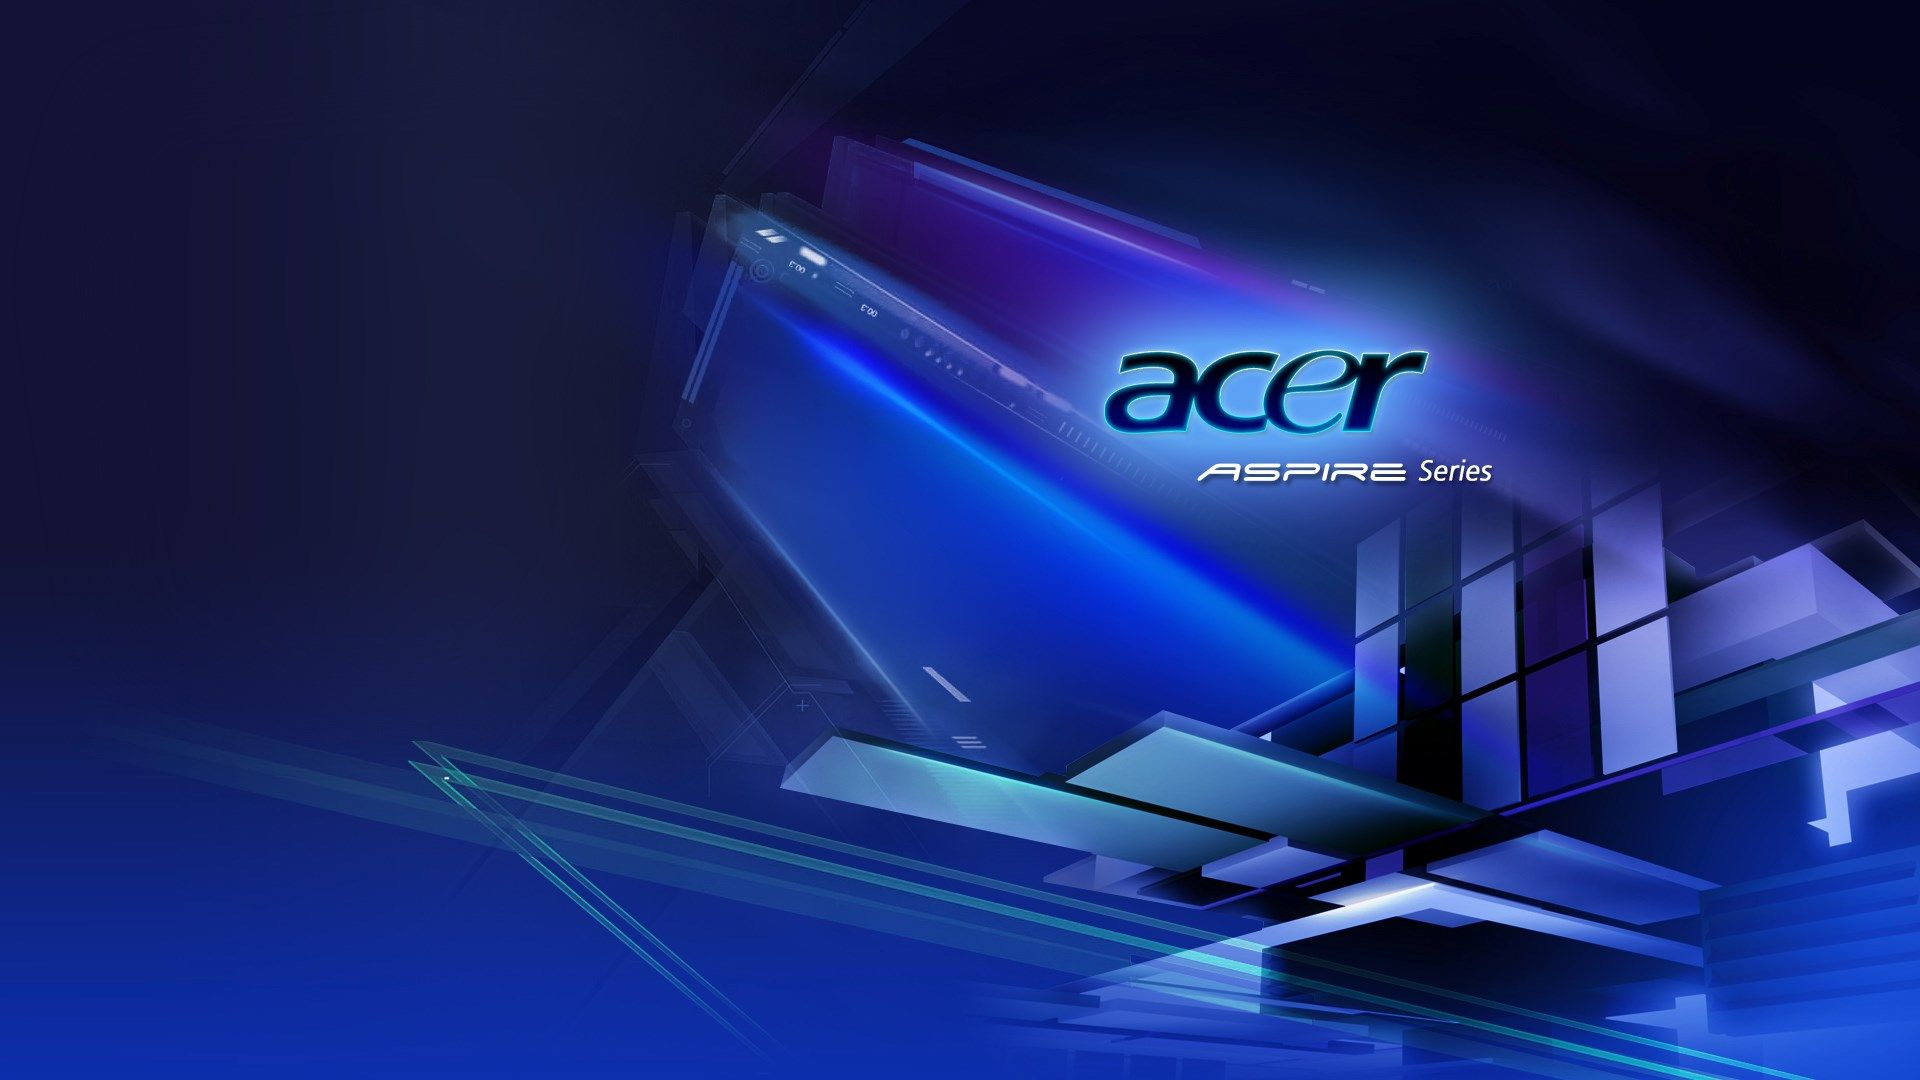 Hd Acer Wallpaper